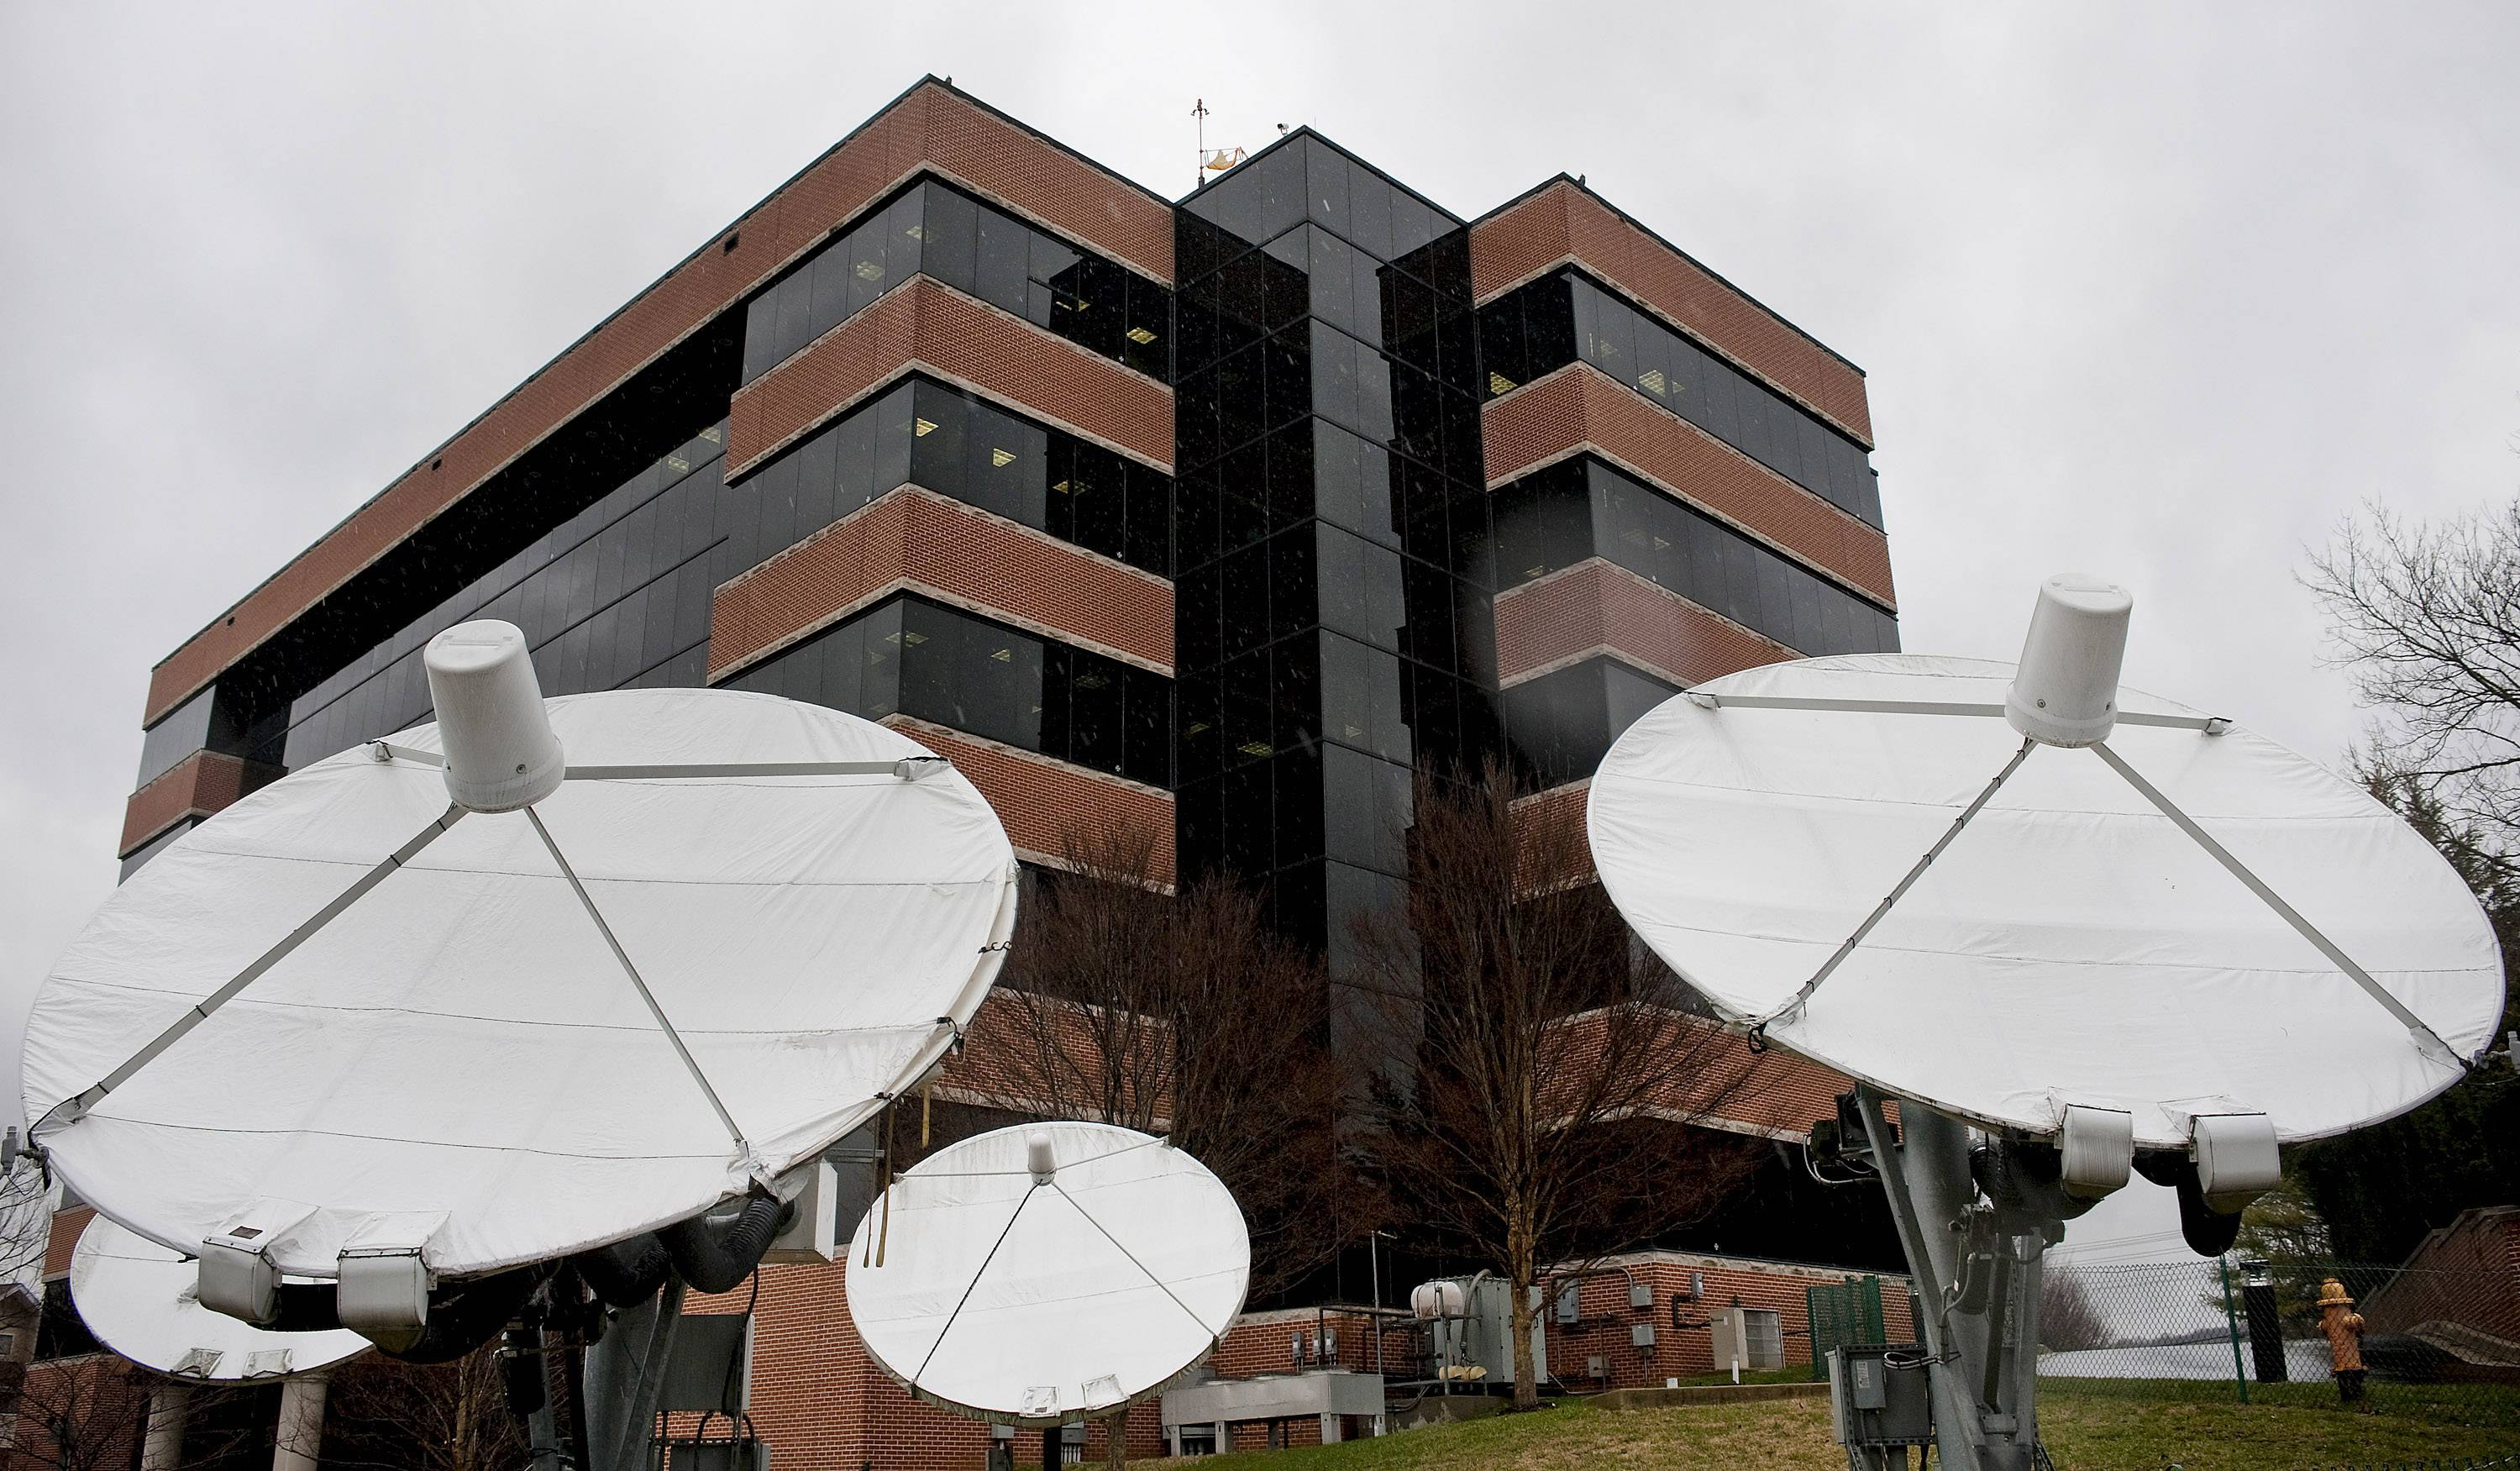 Sinclair Sinclair Broadcast Group's headquarters in Hunt Valley, Md.